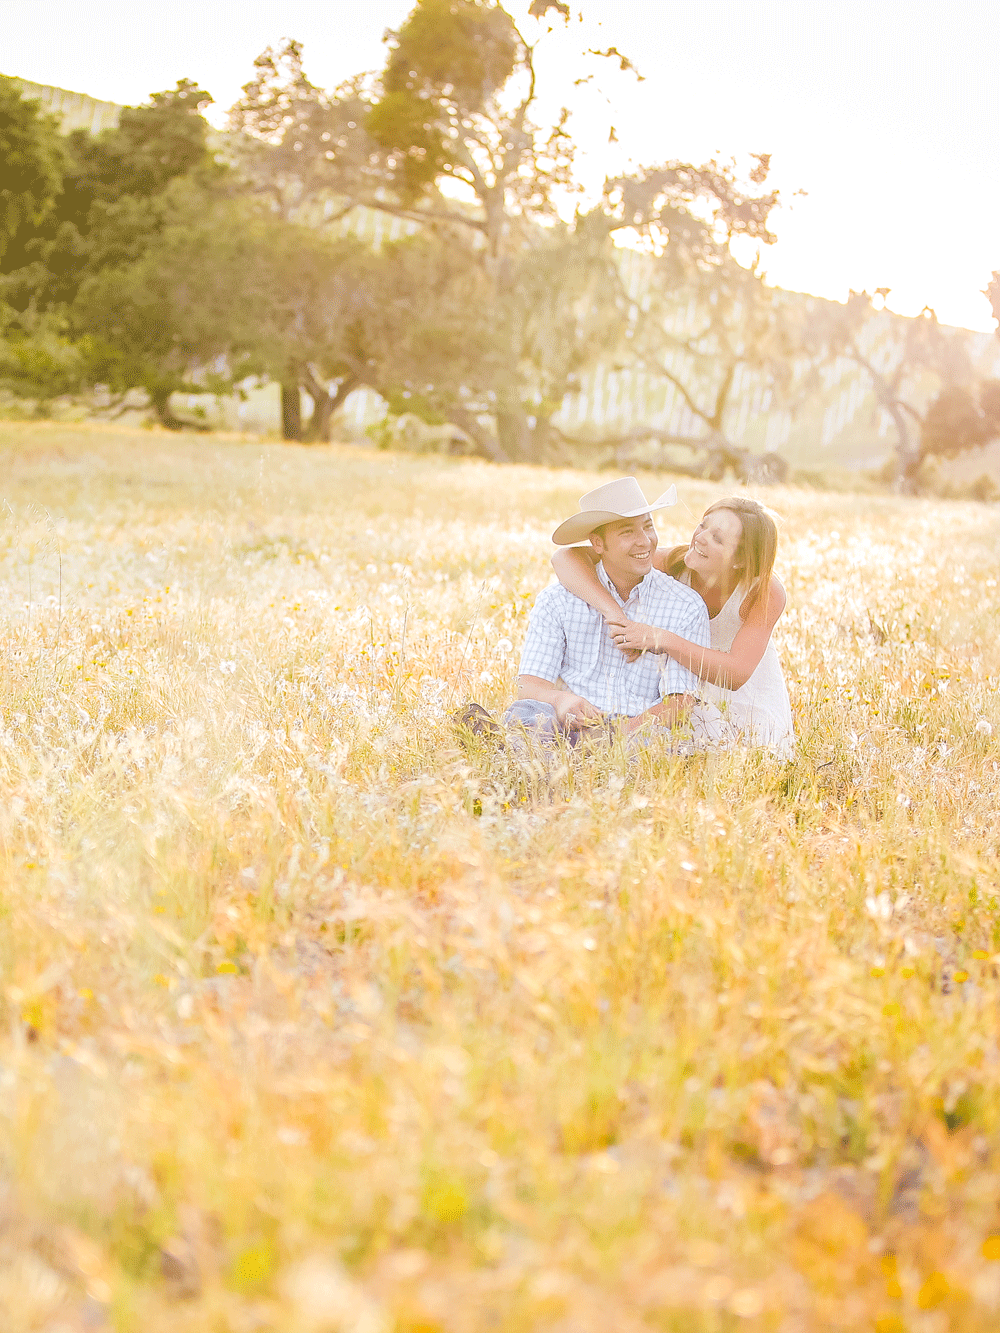 Engagement Session, Santa Ynez, CA